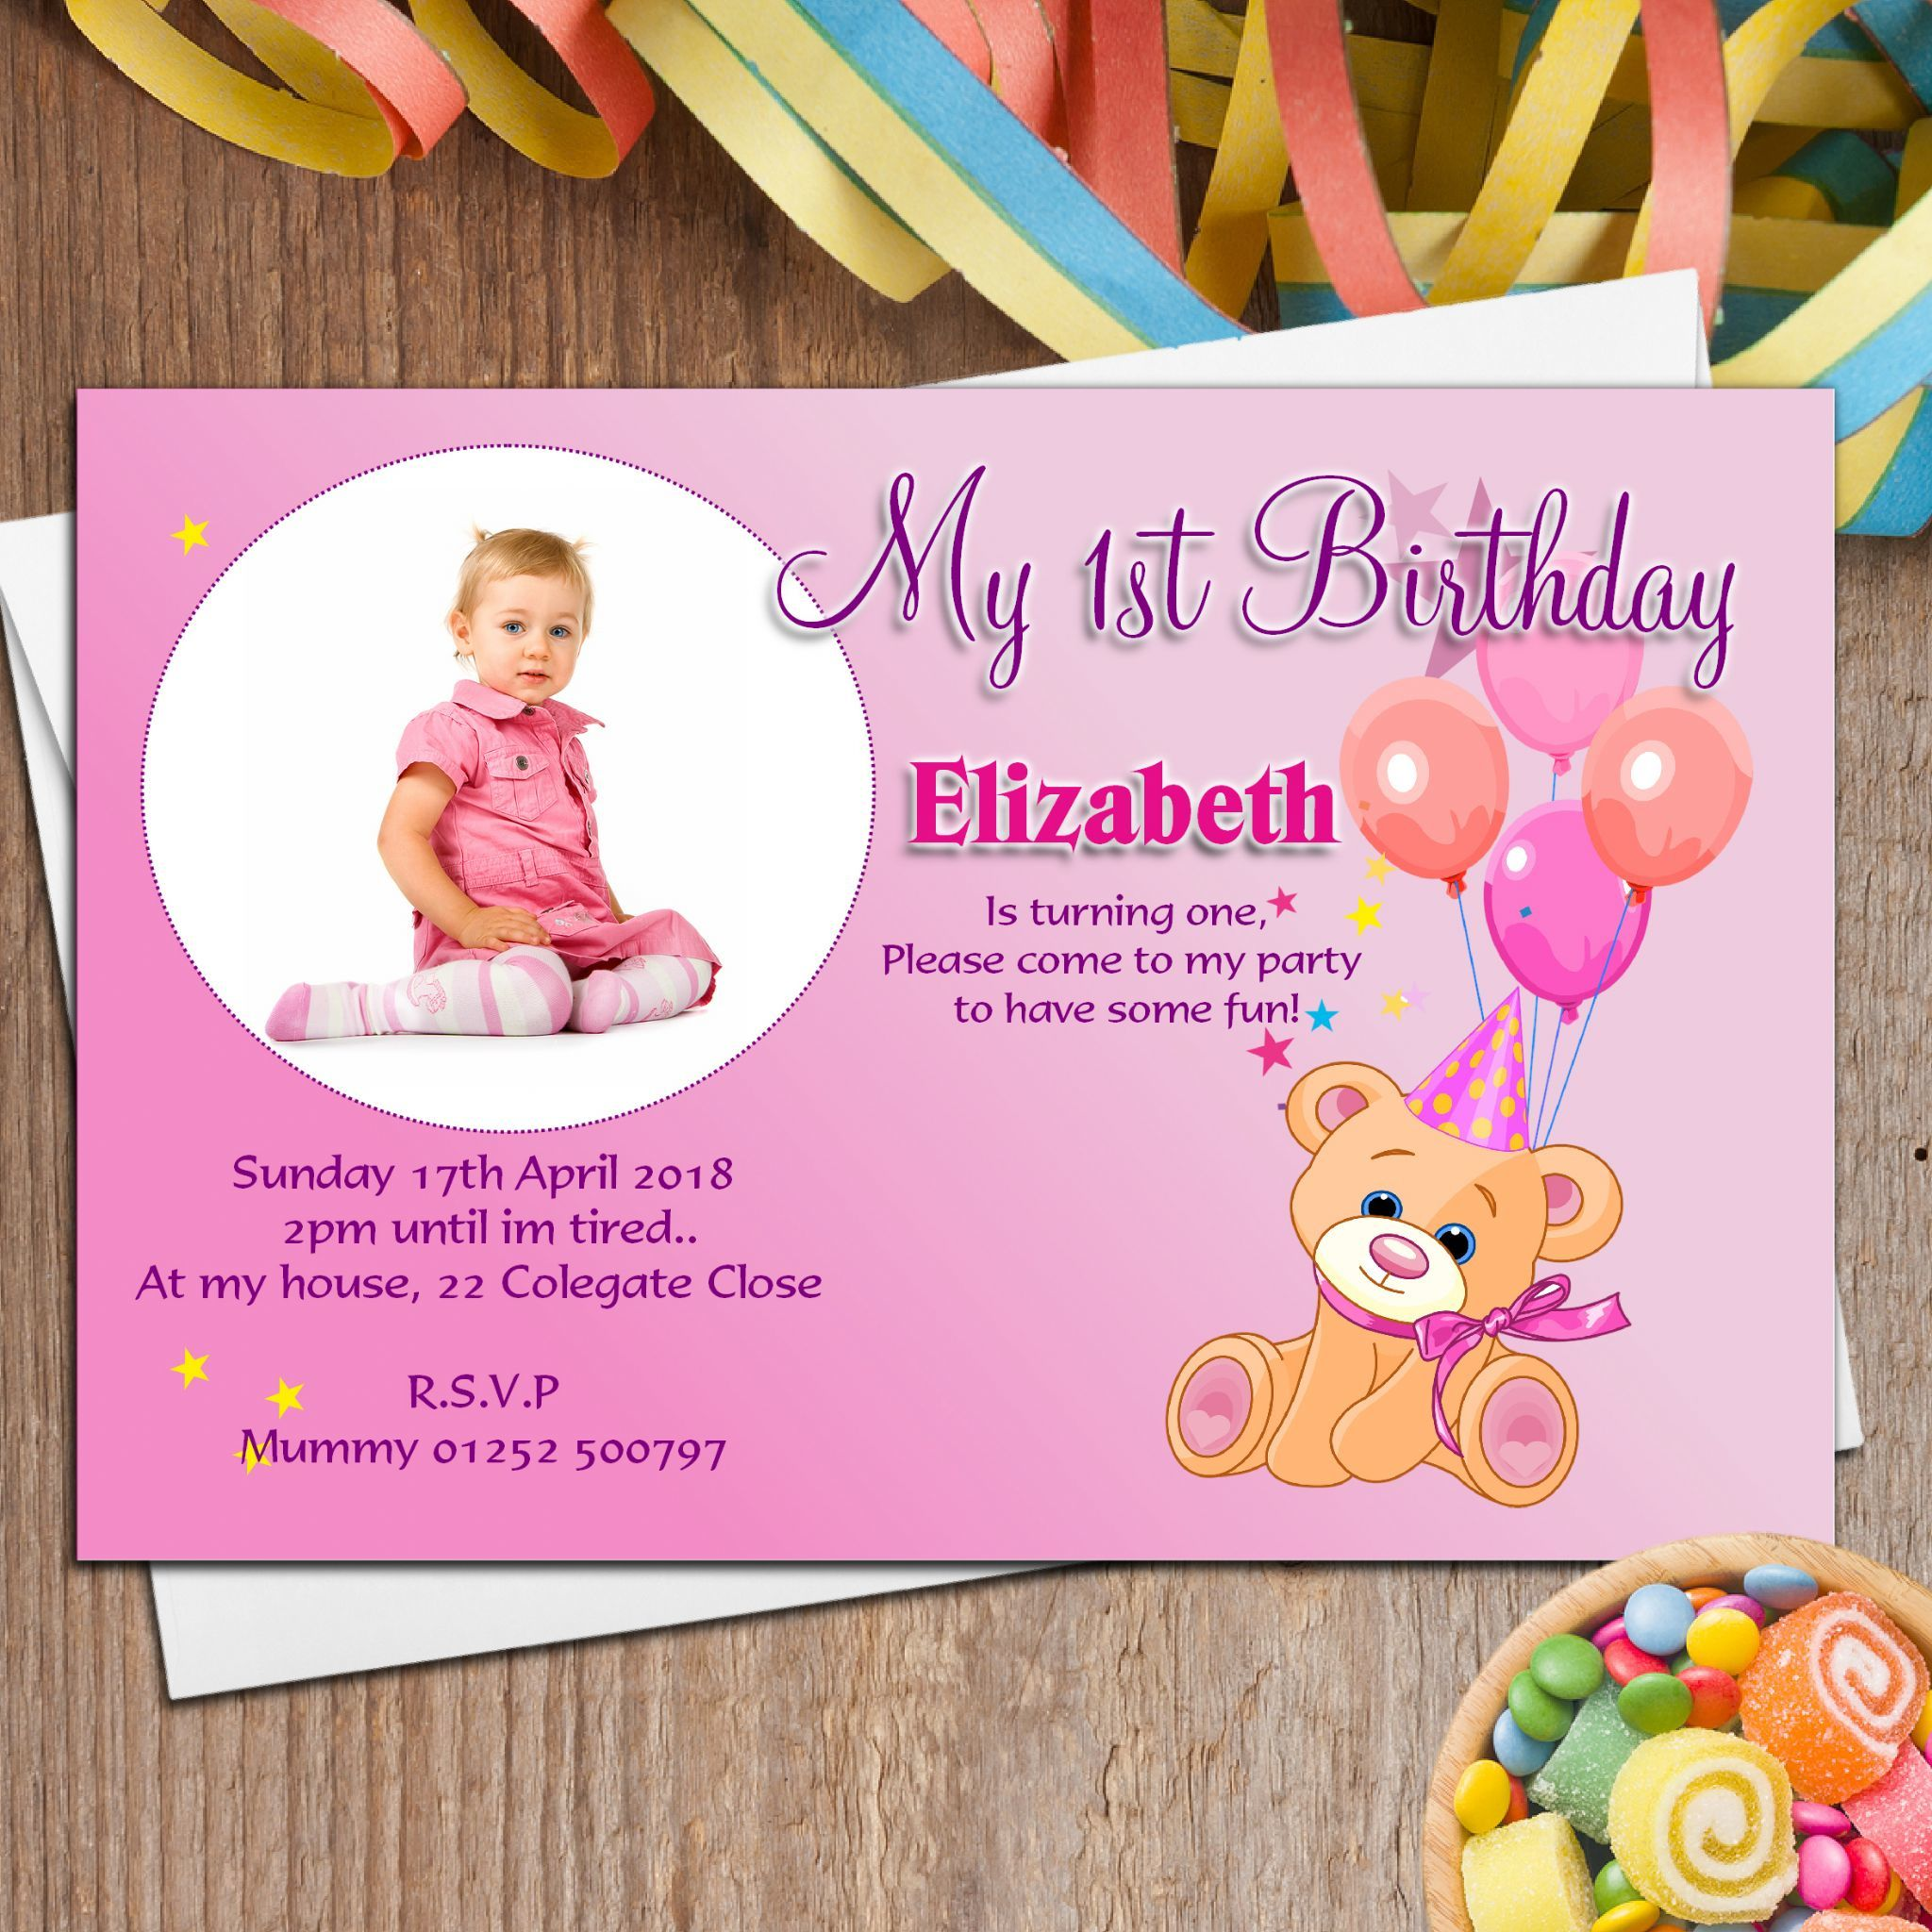 Create Own Personalized Birthday Invitations Modern Templates